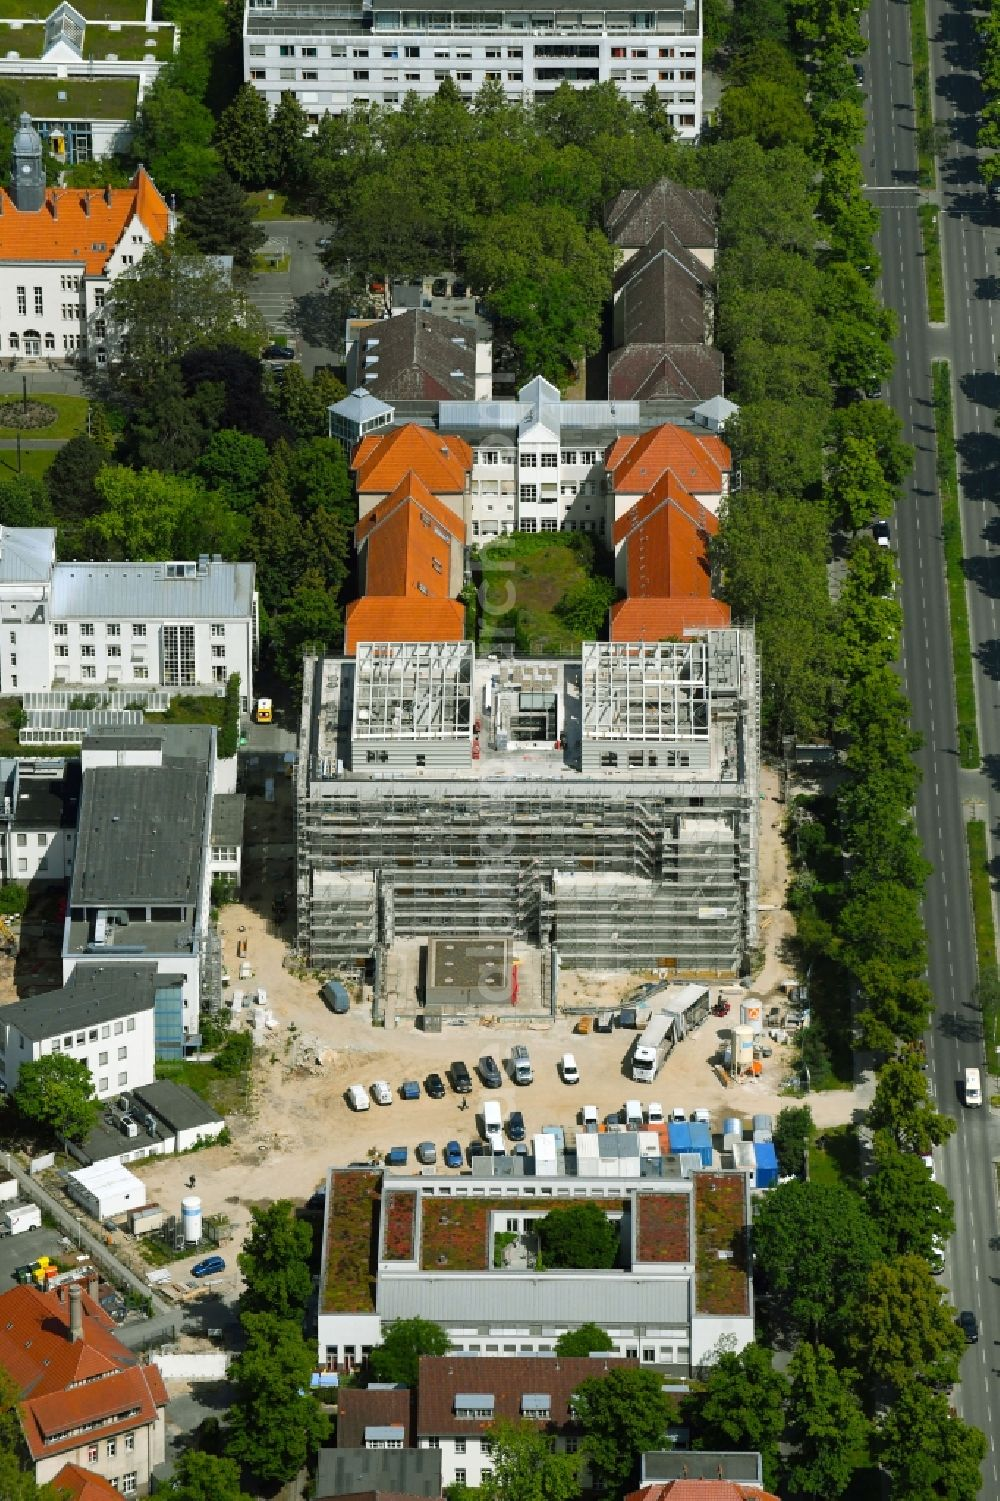 Aerial photograph Berlin - Construction site for a new extension to the hospital grounds Vivantes Auguste-Viktoria-Klinikum in the district Schoeneberg in Berlin, Germany